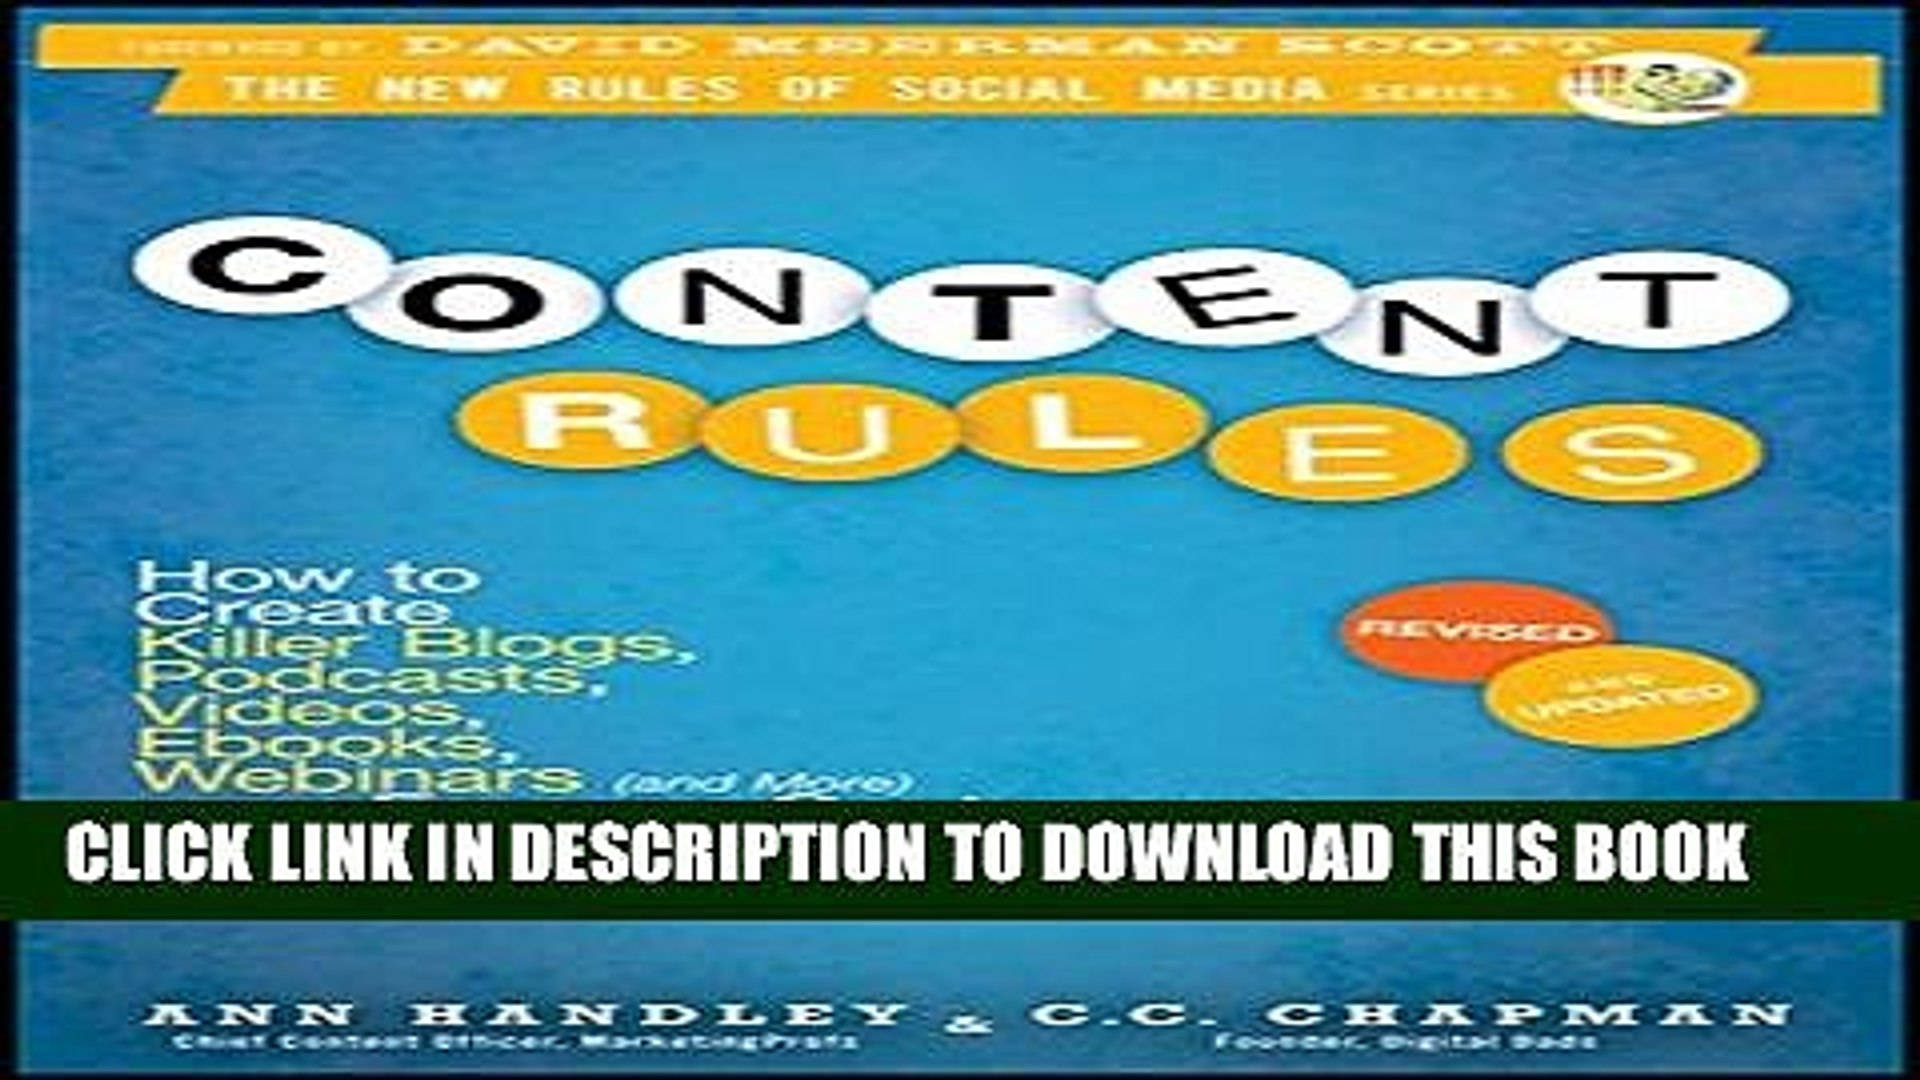 Collection Book Content Rules: How to Create Killer Blogs, Podcasts, Videos, Ebooks, Webinars (and